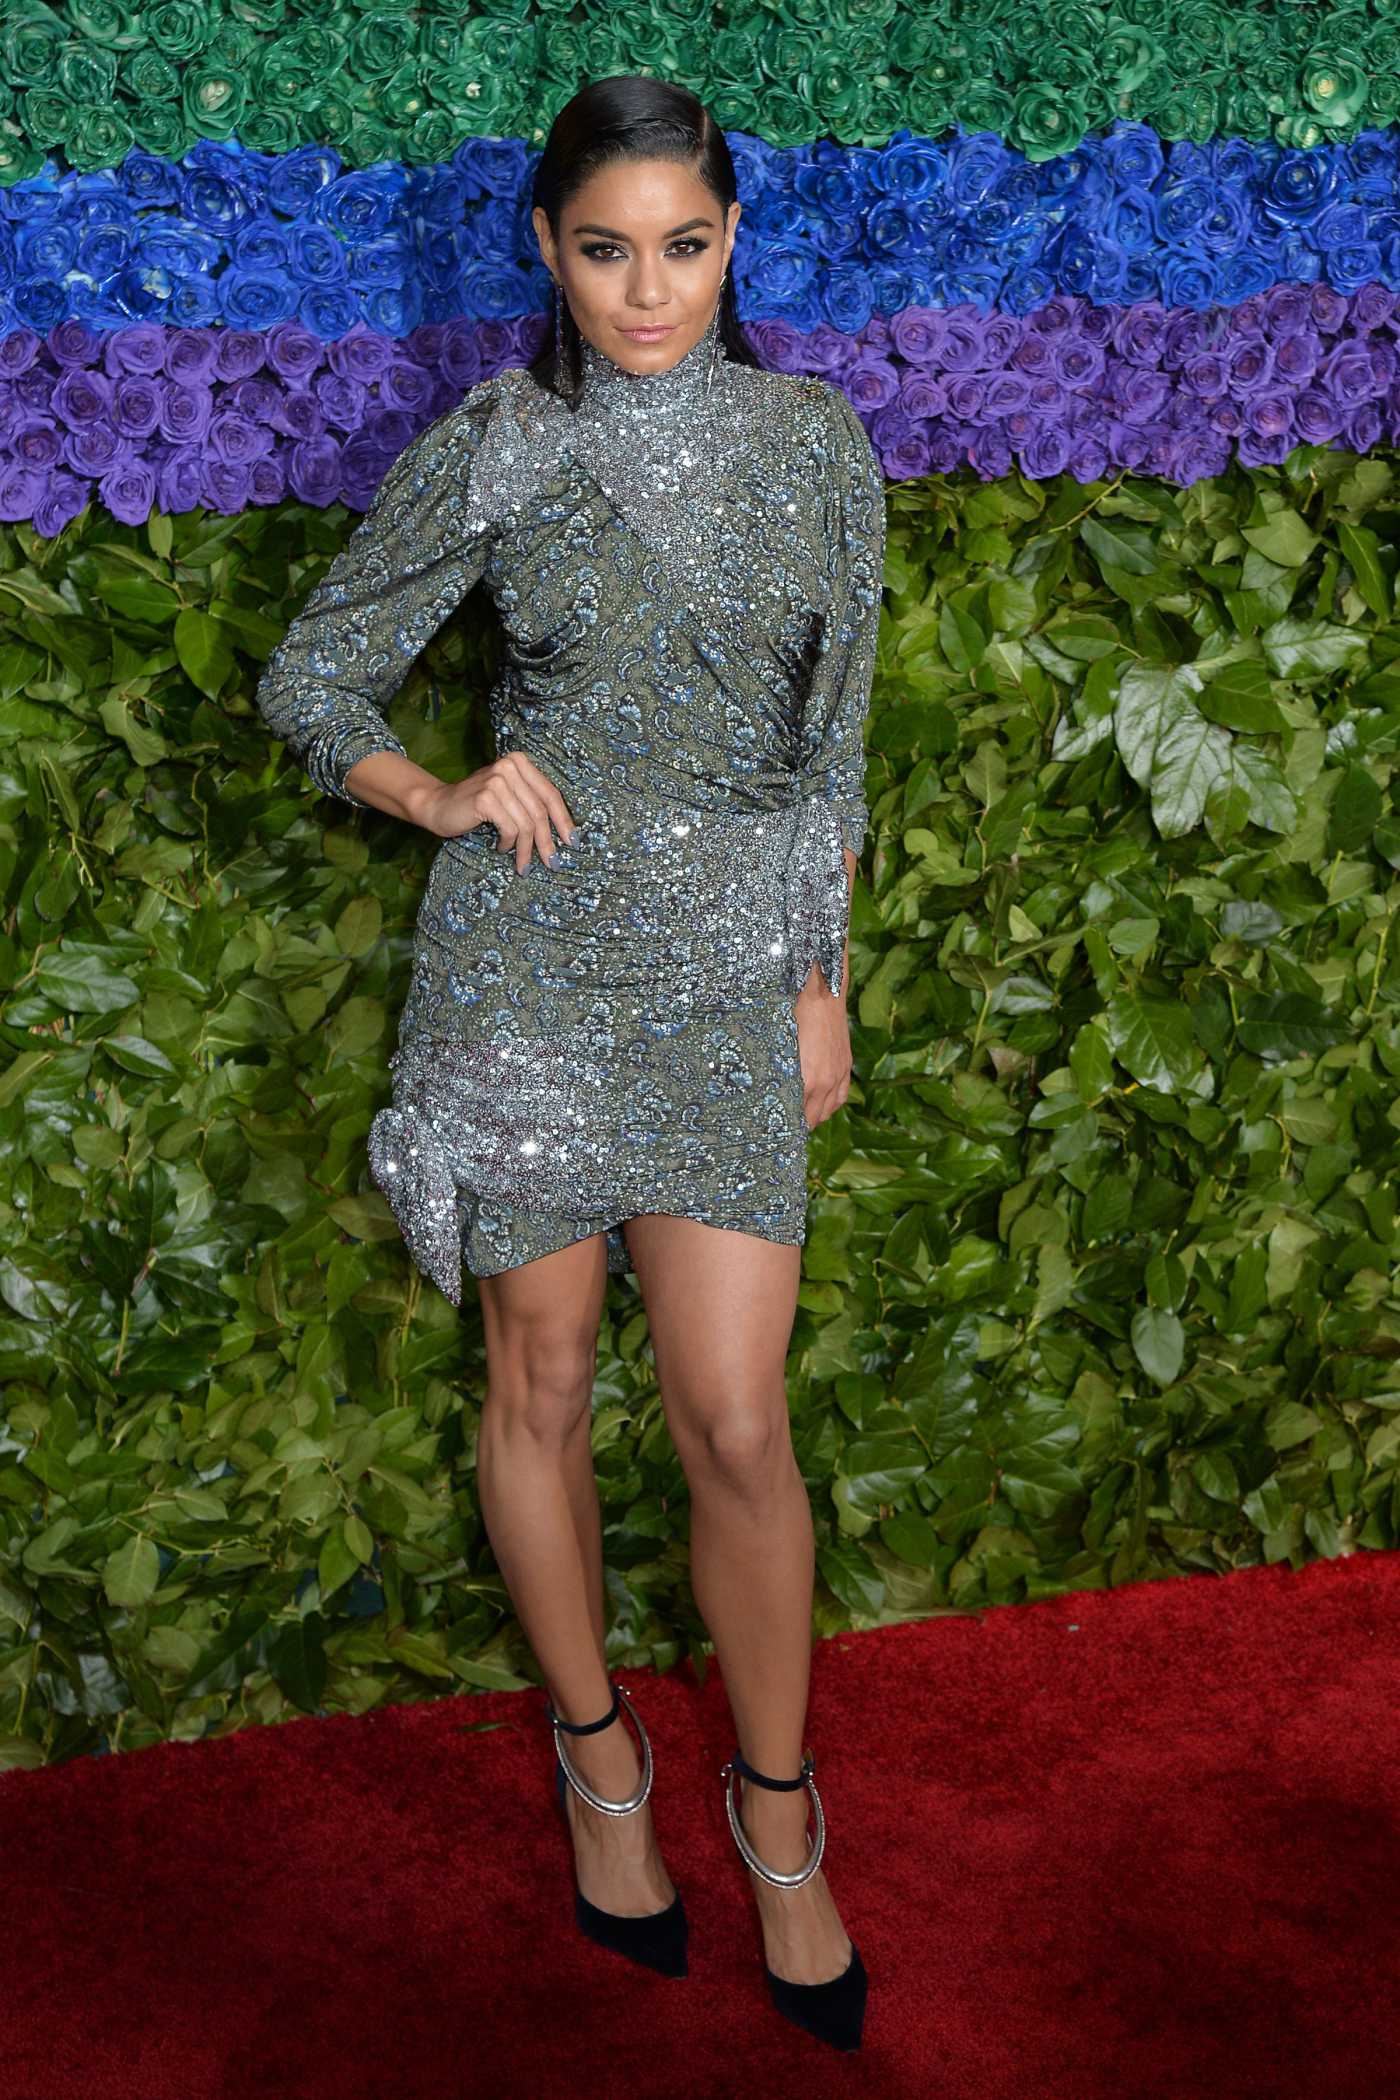 Vanessa Hudgens Attends the 73rd Annual Tony Awards at Radio City Music Hall in New York 06/09/2019